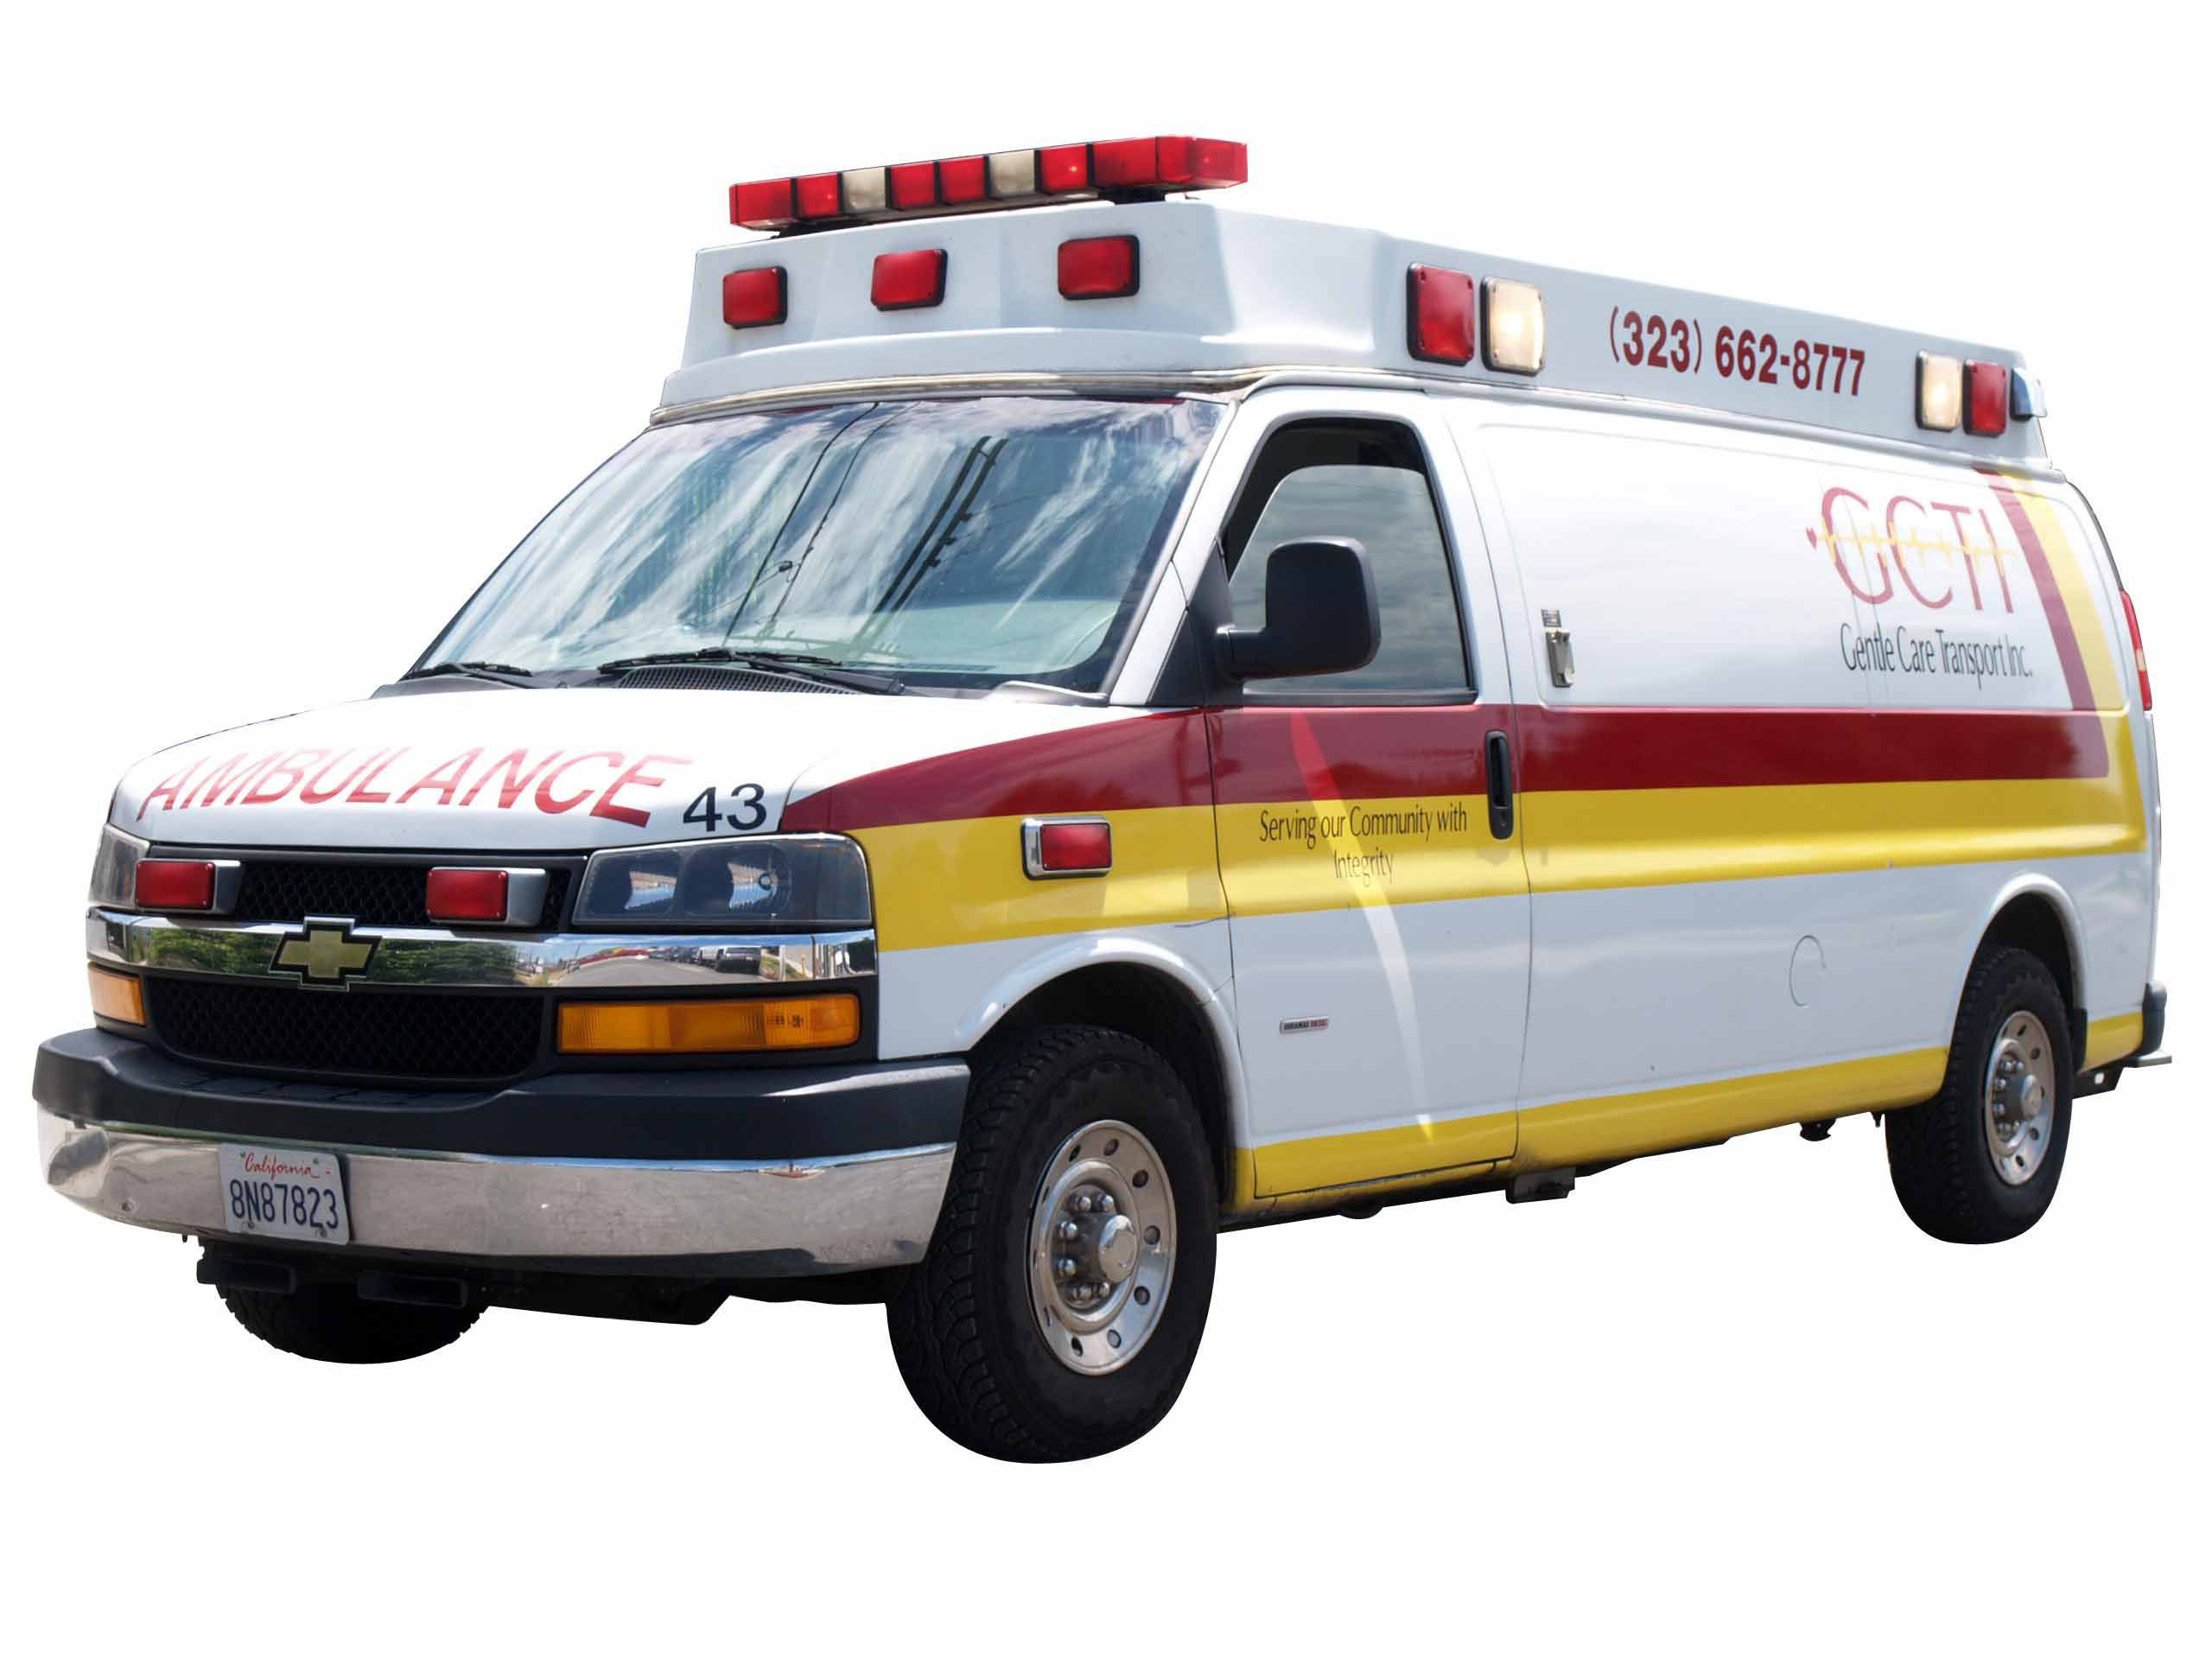 BLS Ambulance